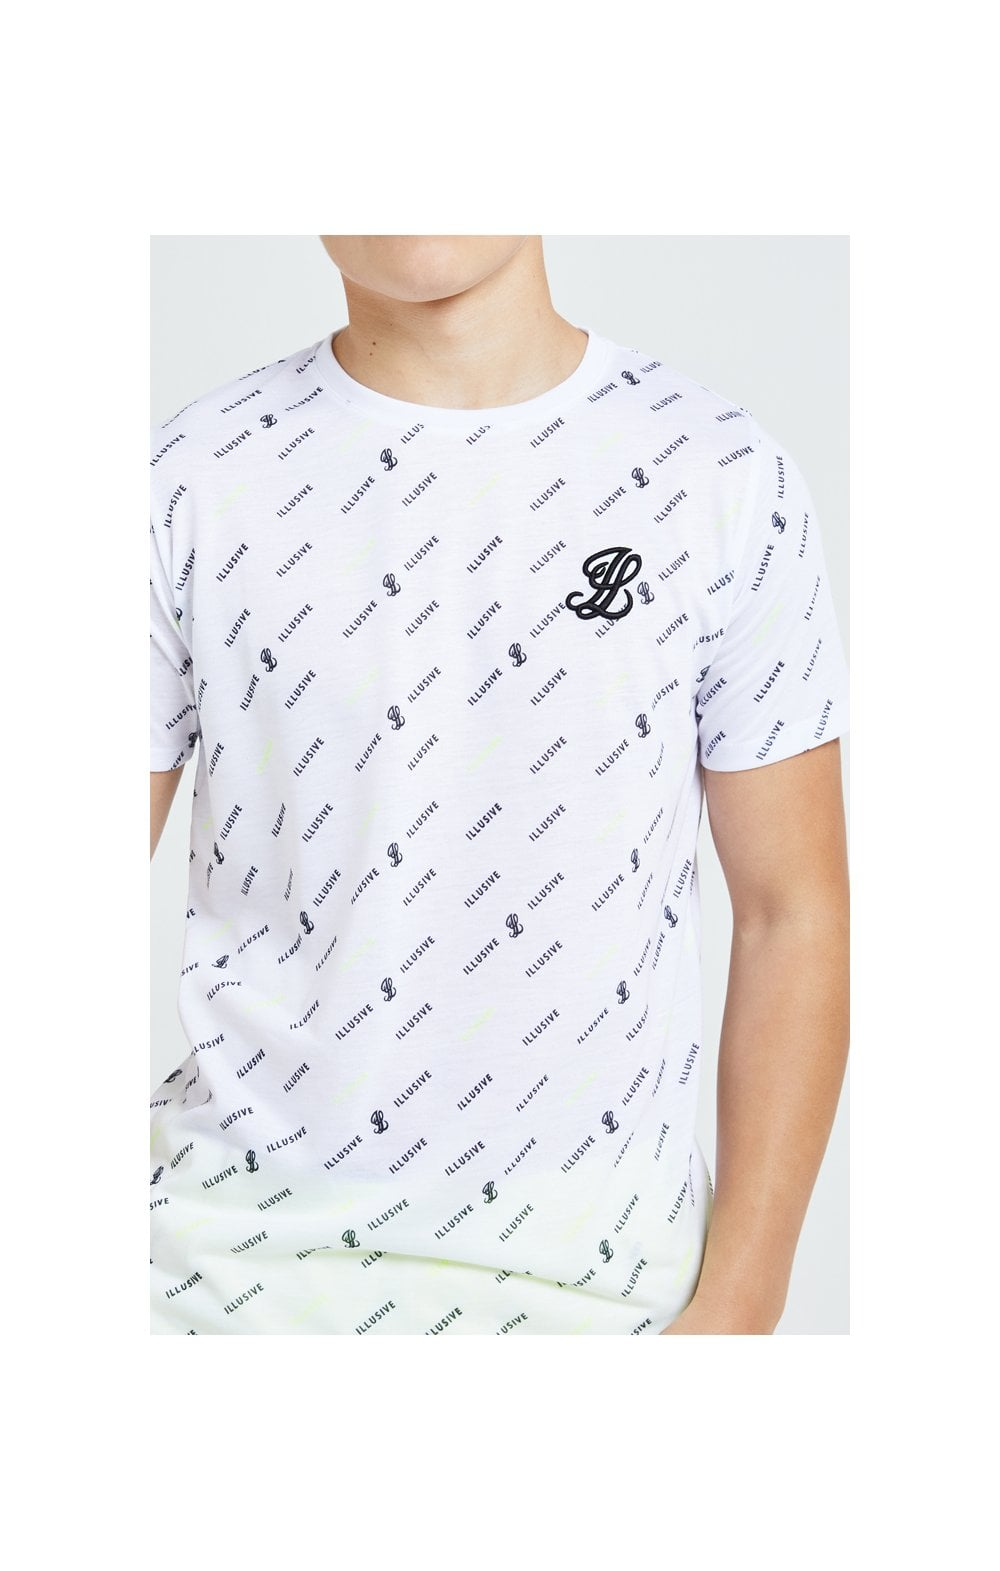 Illusive London All Over Print Tee - White (1)